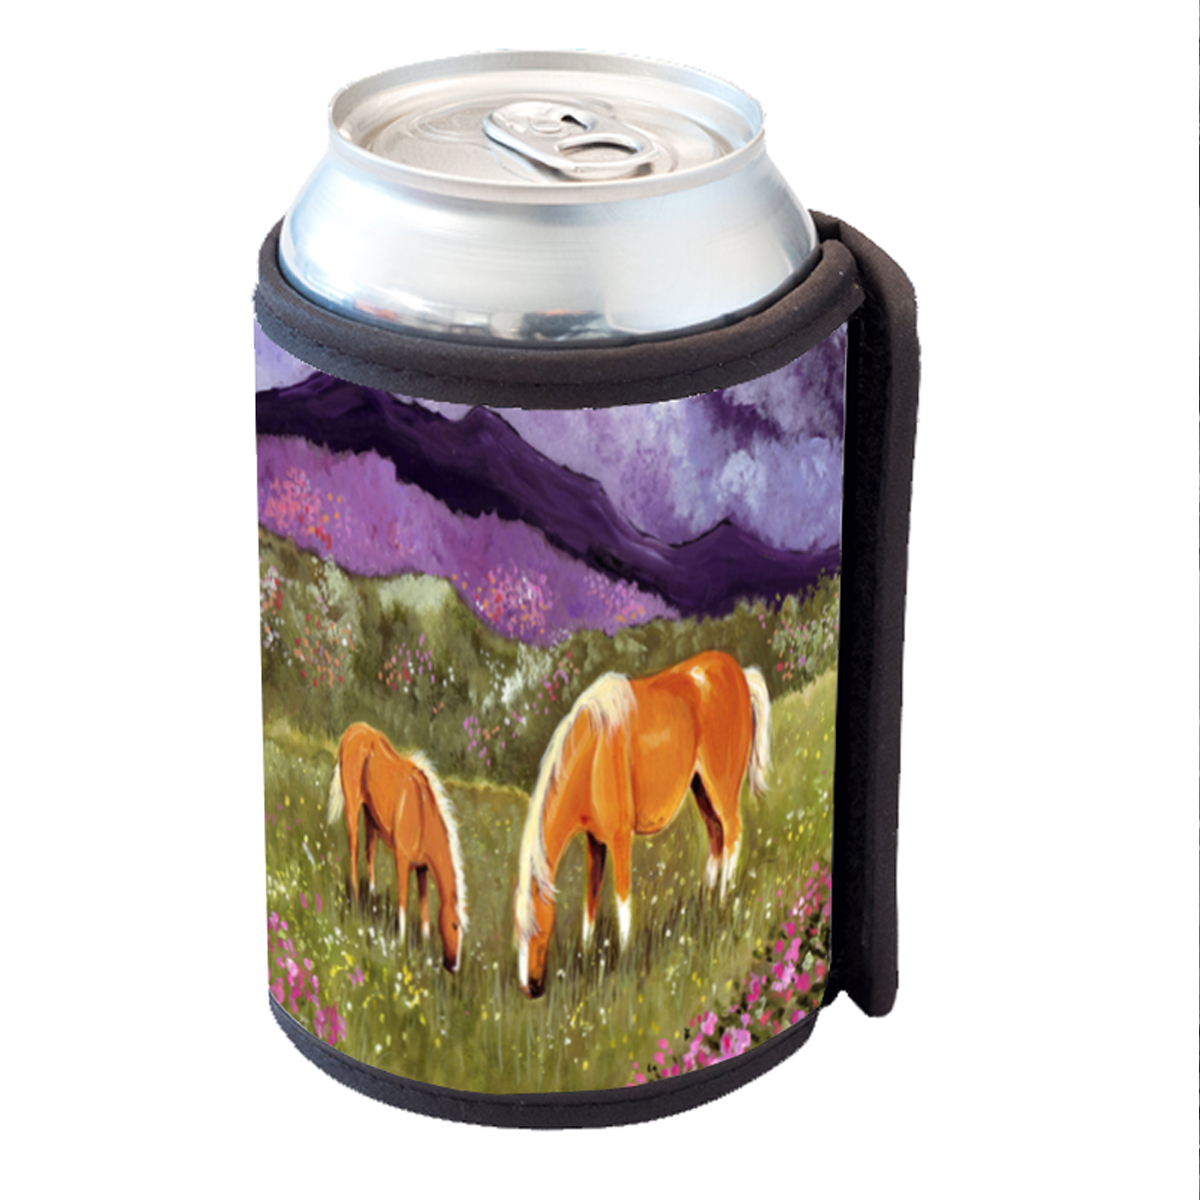 KuzmarK Insulated Drink Can Cooler Hugger - Belgian Mare and Foal High Valley Spring Horse Art by Denise Every